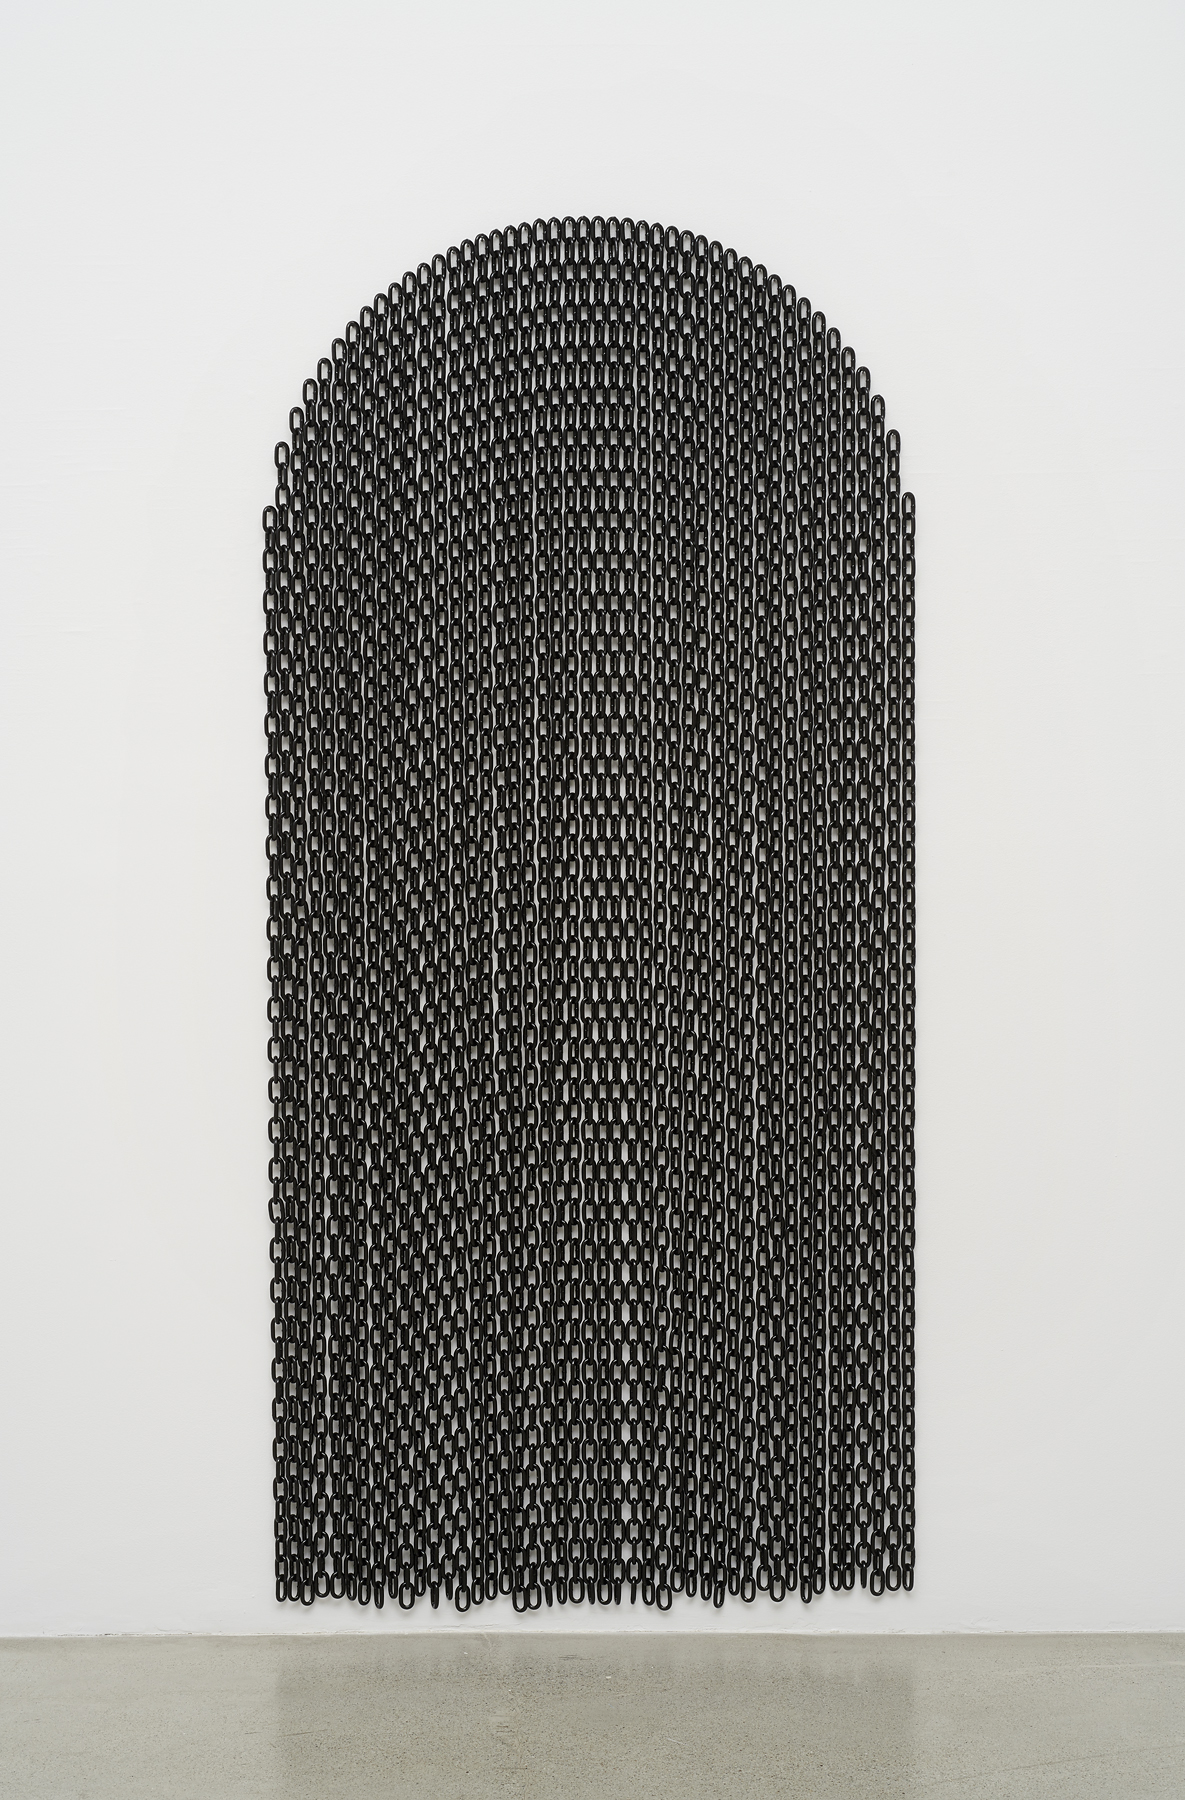 Davina Semo,  Threshold , 2019, Powder coated steel chain and hardware, 85 x 40 inches / 215.9 x 101.6 cm